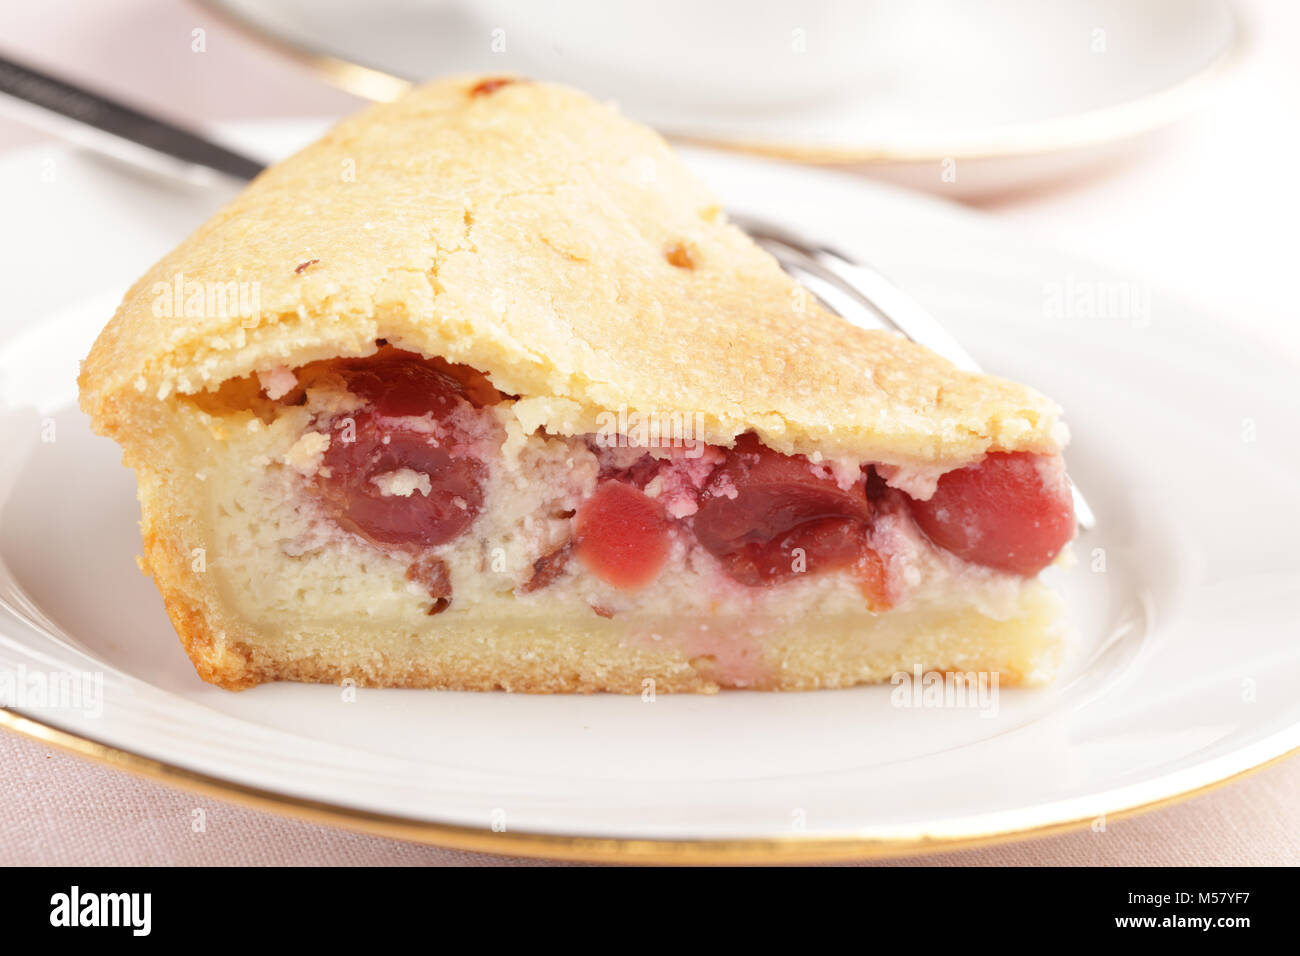 Basque cherry cake on a plate closeup - Stock Image